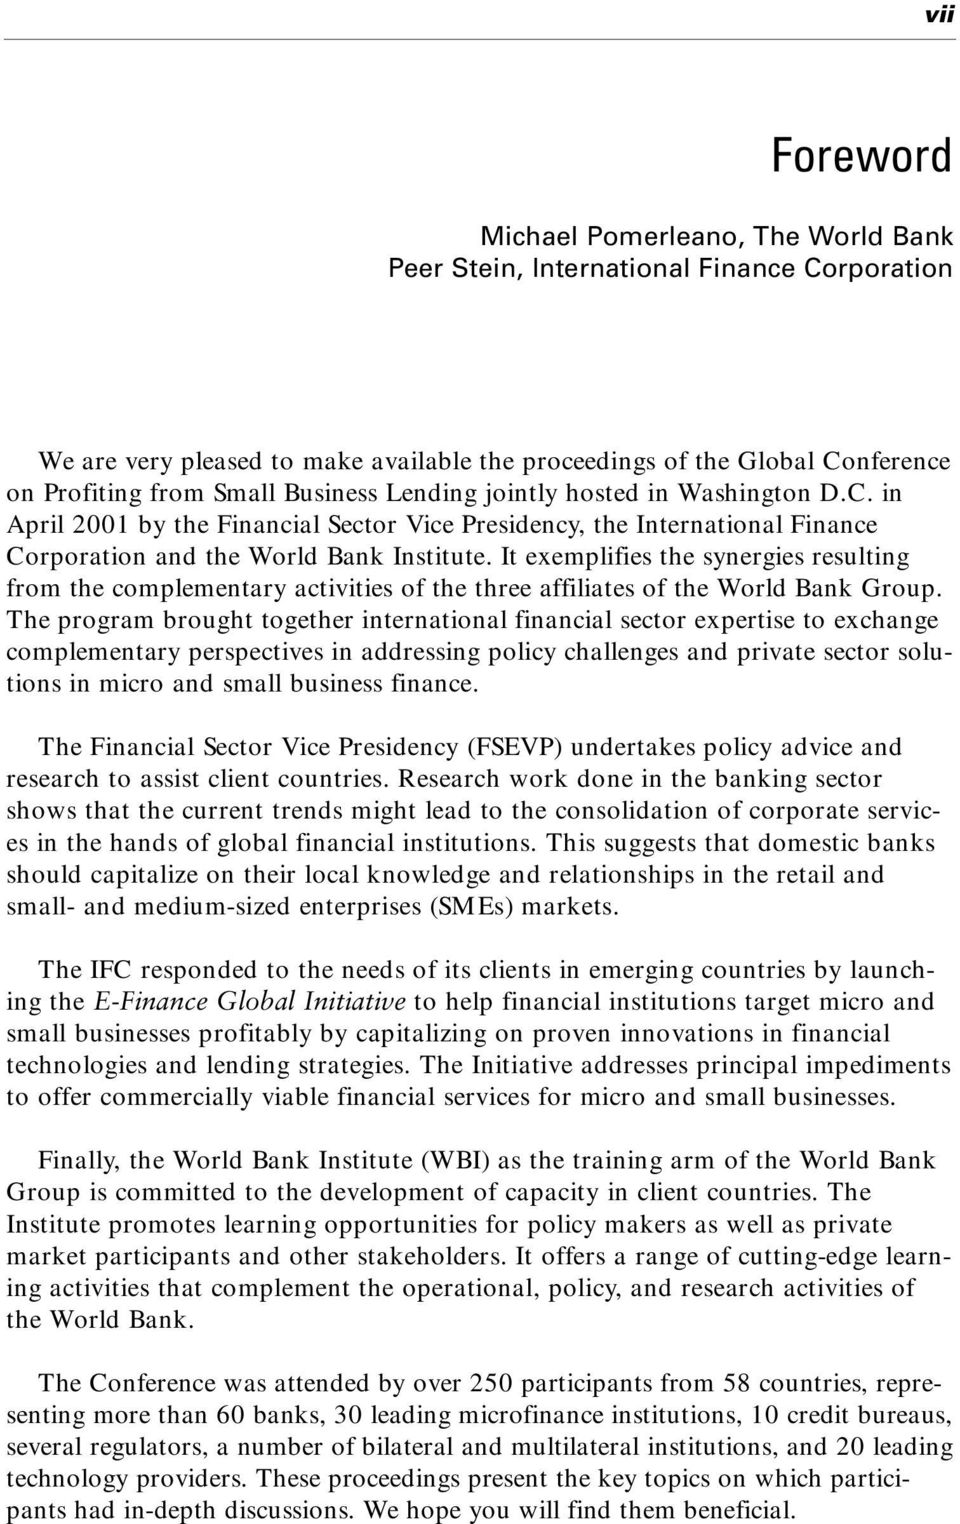 It exemplifies the synergies resulting from the complementary activities of the three affiliates of the World Bank Group.